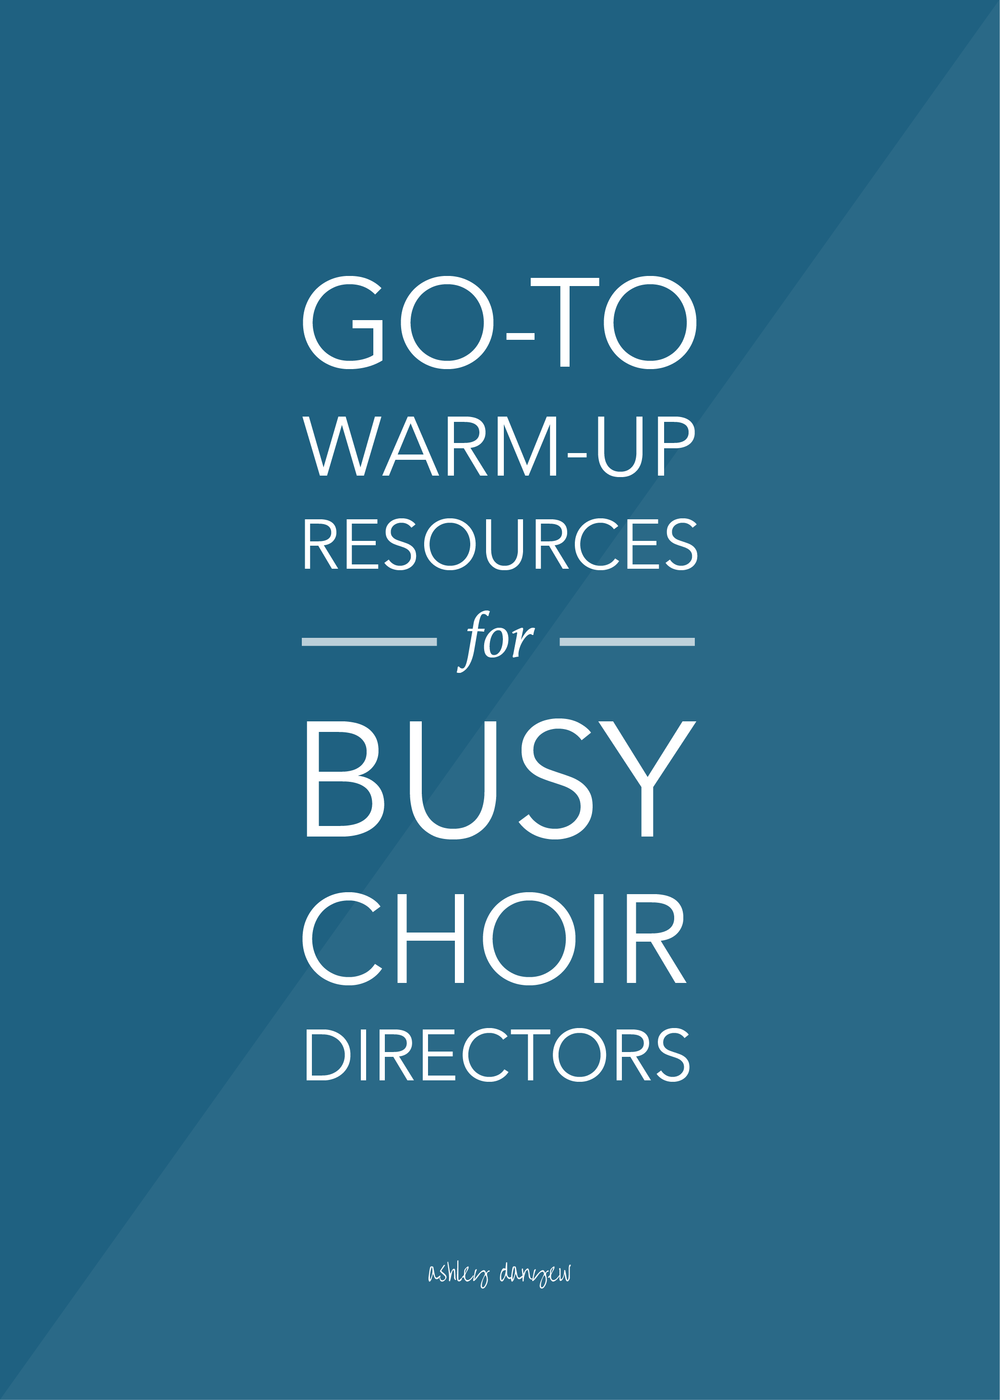 Go-To Warm-Up Resources for Busy Choir Directors-09.png